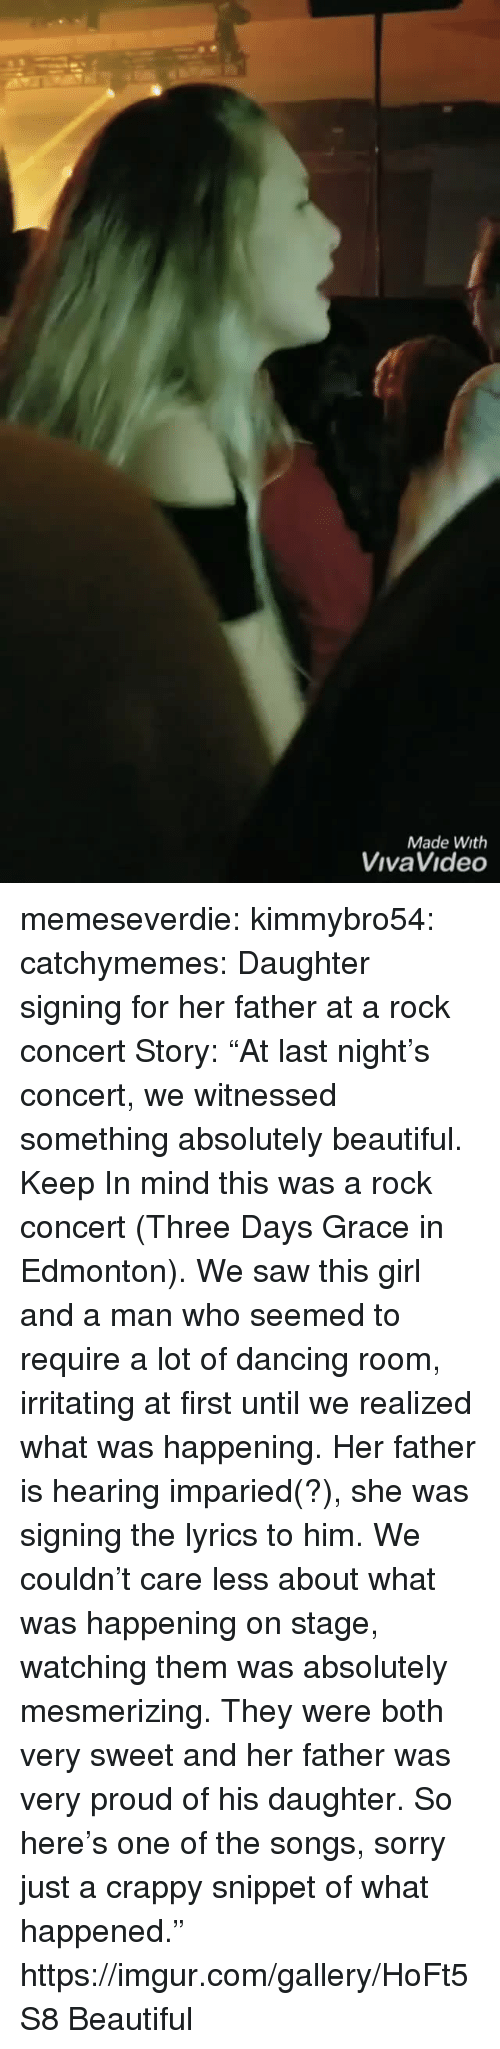 """Beautiful, Dancing, and Saw: Made With  VivaVideo memeseverdie: kimmybro54:  catchymemes:  Daughter signing for her father at a rock concert   Story: """"At last night's concert, we witnessed something absolutely beautiful. Keep In mind this was a rock concert (Three Days Grace in Edmonton). We saw this girl and a man who seemed to require a lot of dancing room, irritating at first until we realized what was happening. Her father is hearing imparied(?), she was signing the lyrics to him. We couldn't care less about what was happening on stage, watching them was absolutely mesmerizing. They were both very sweet and her father was very proud of his daughter. So here's one of the songs, sorry just a crappy snippet of what happened.""""  https://imgur.com/gallery/HoFt5S8   Beautiful"""